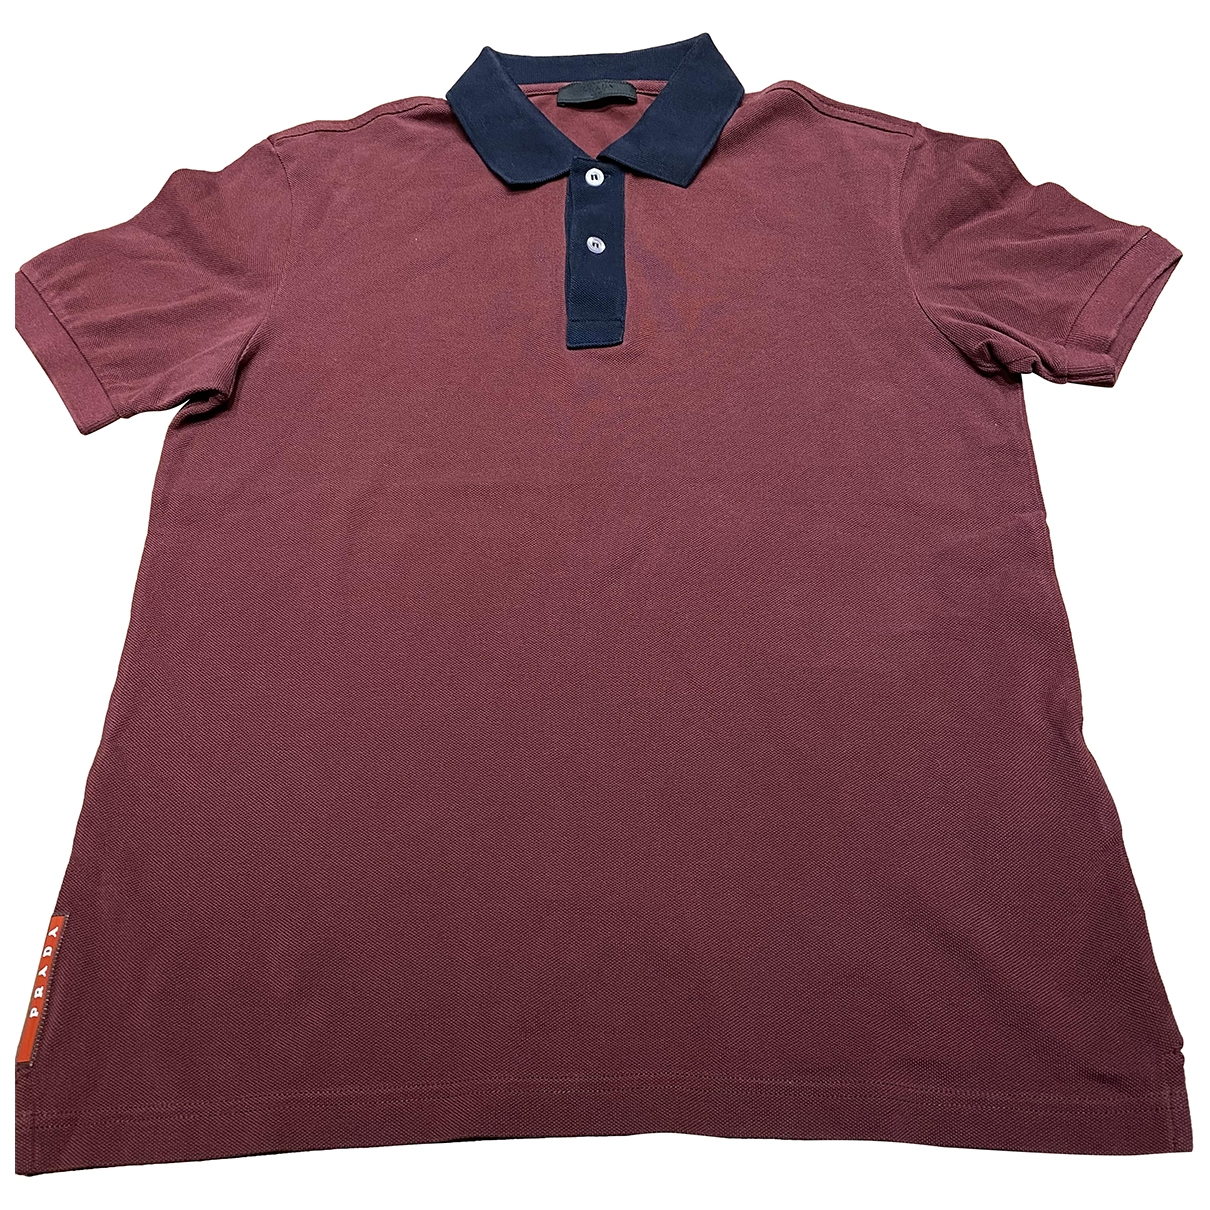 Prada \N Burgundy Cotton T-shirts for Men M International